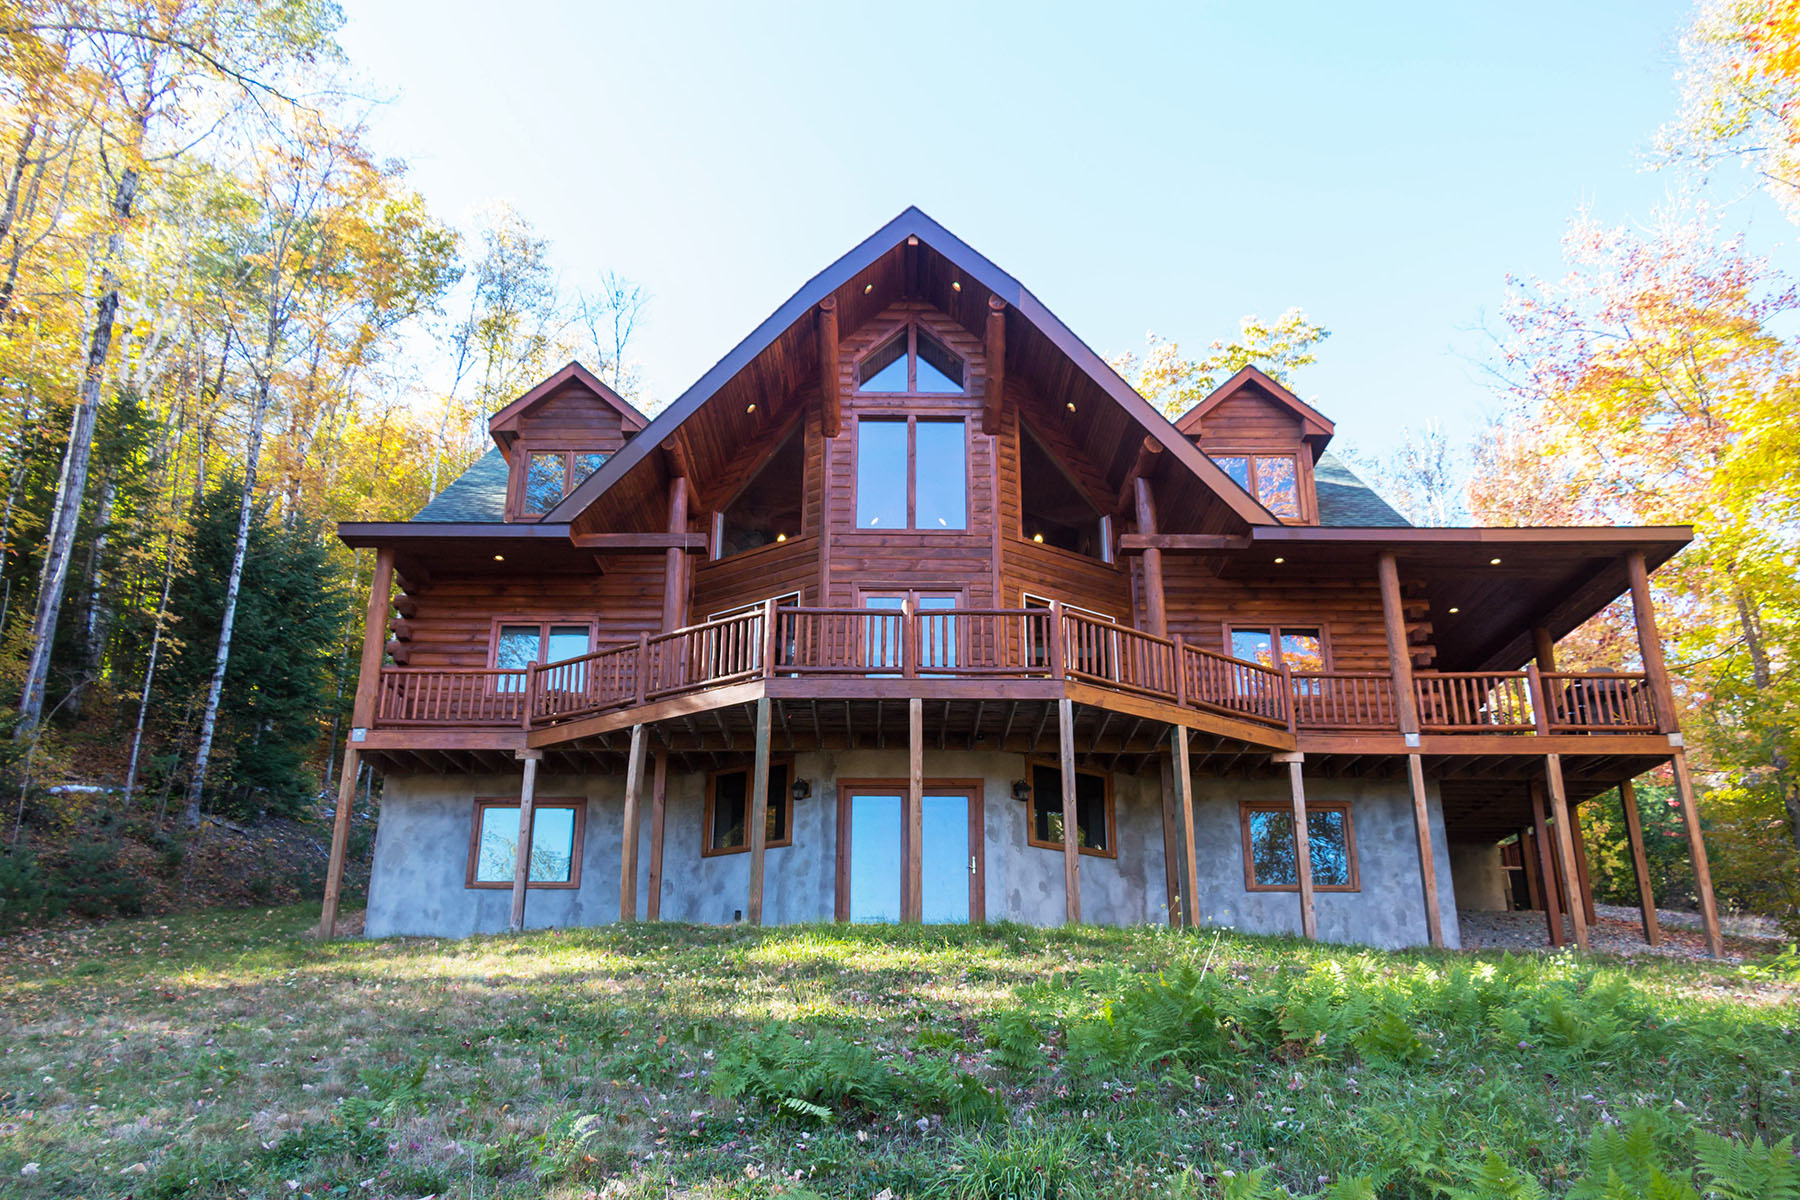 Single Family Home for Sale at Gore Mountain Log Home 35 Evergreen Way Johnsburg, New York 12853 United States